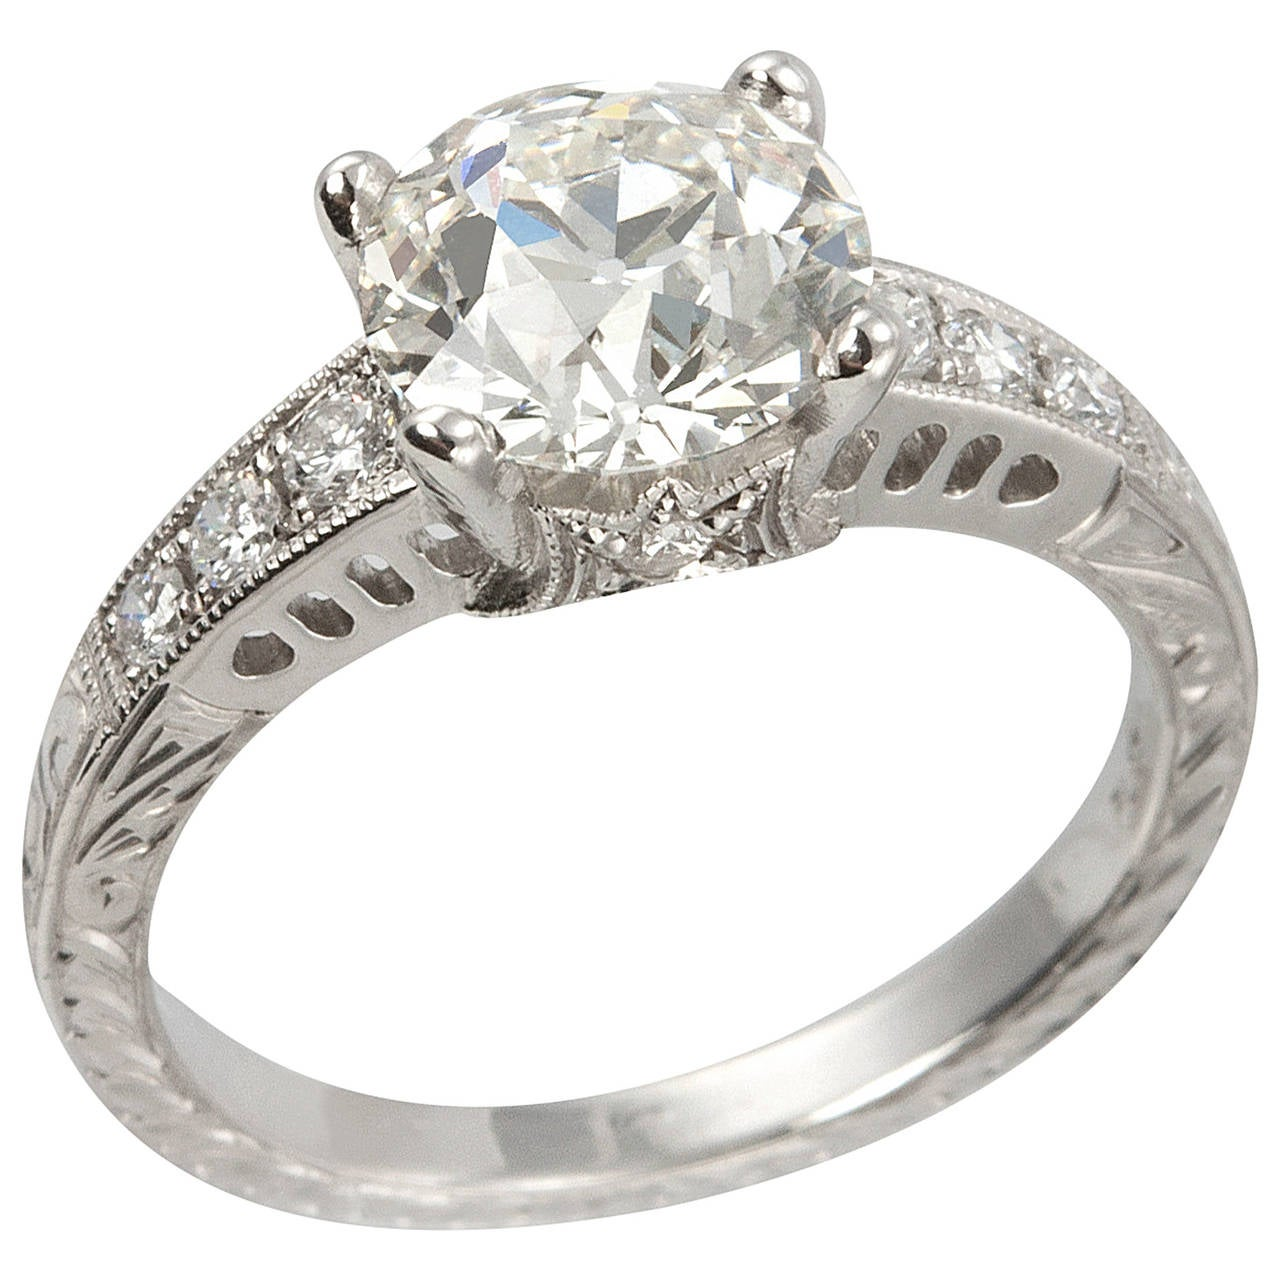 1.91 Carat Old European Cut Diamond Platinum Engagement Ring